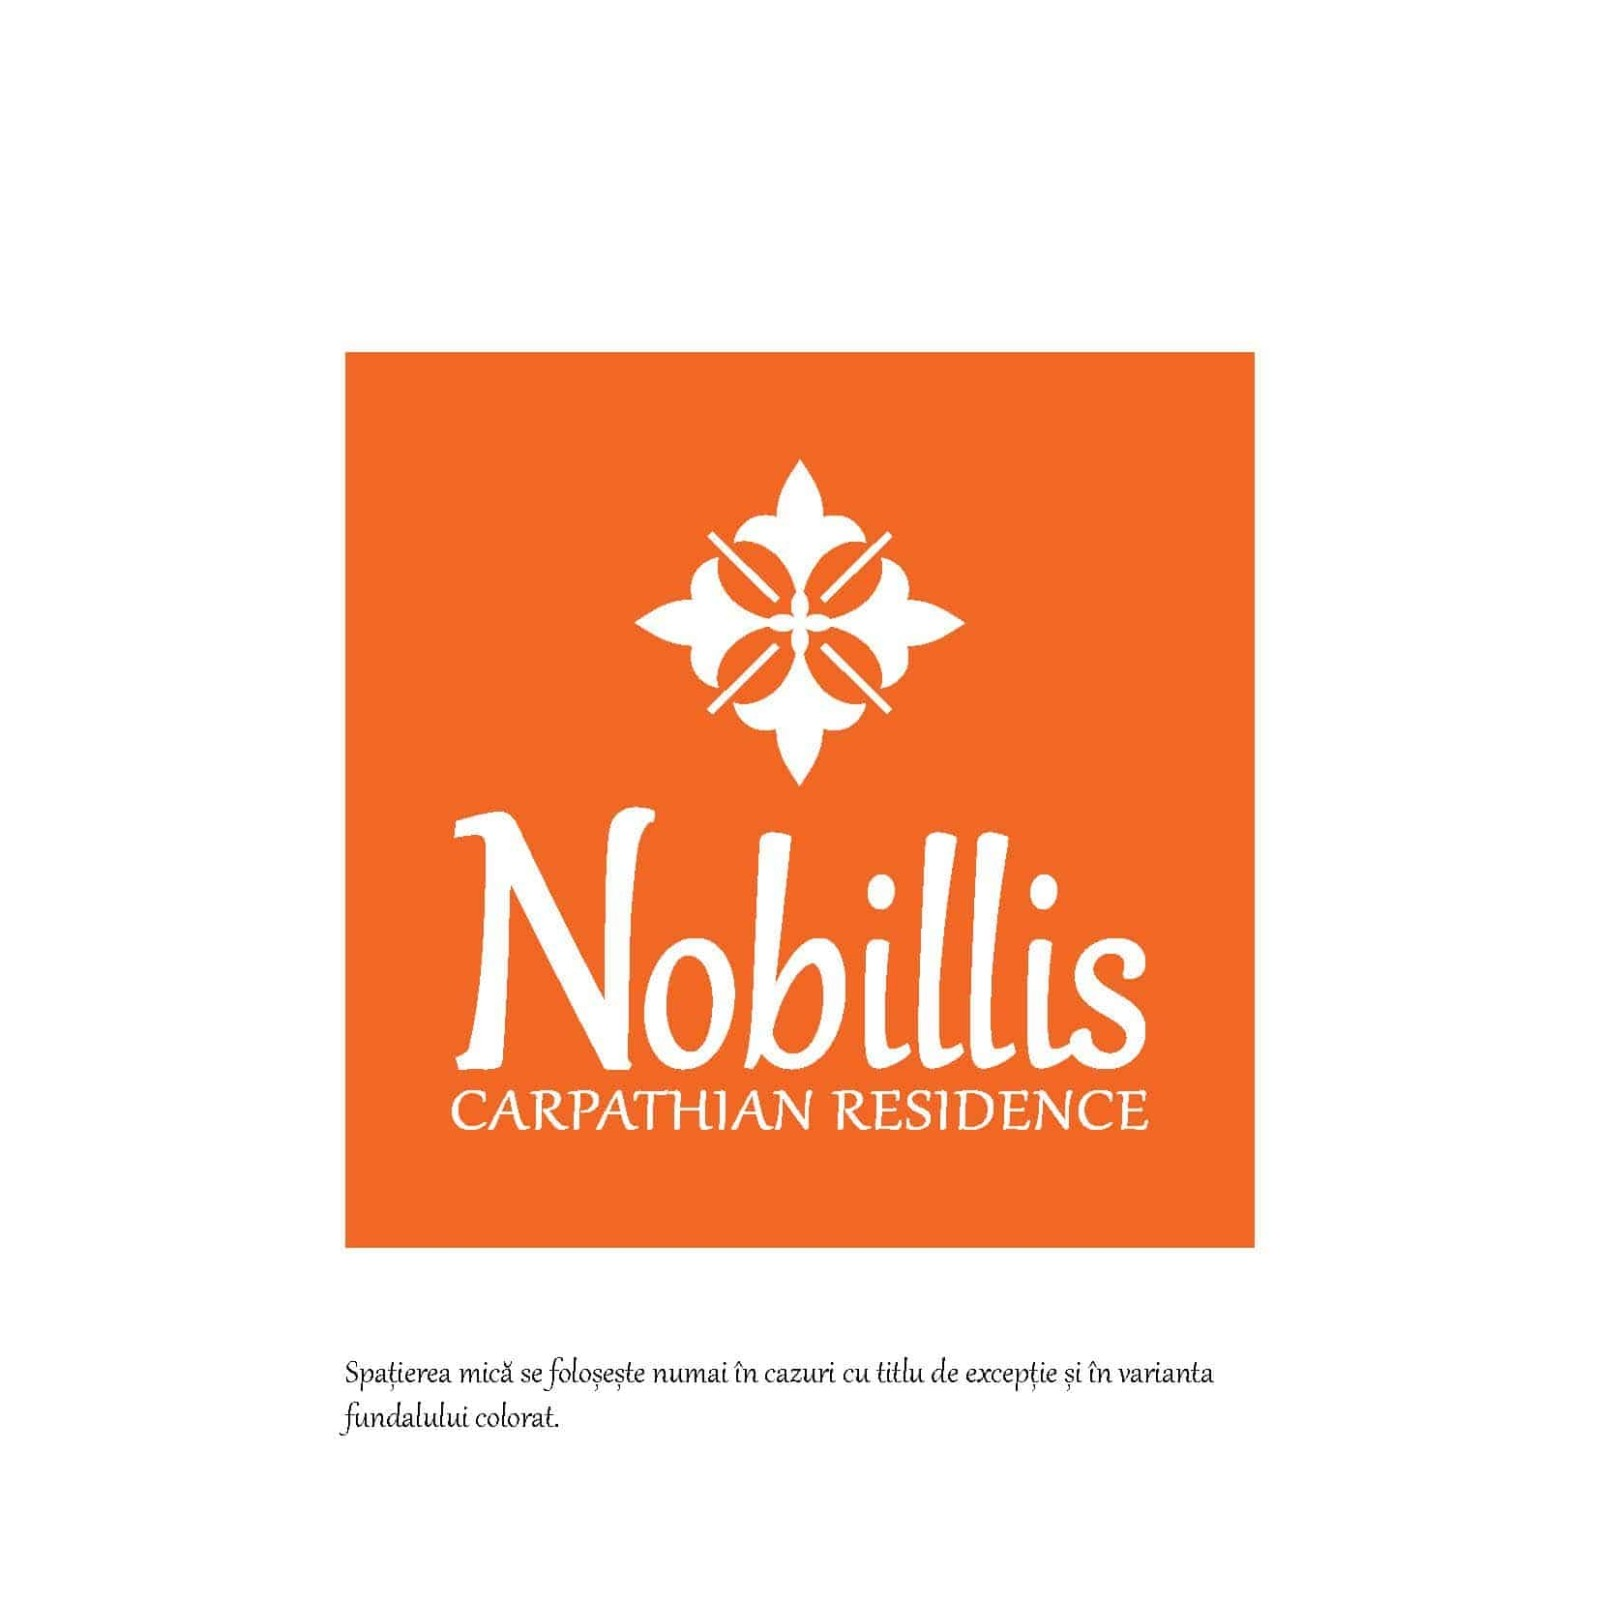 Styling Guide Nobillis, Toud Design Agency, Identity design